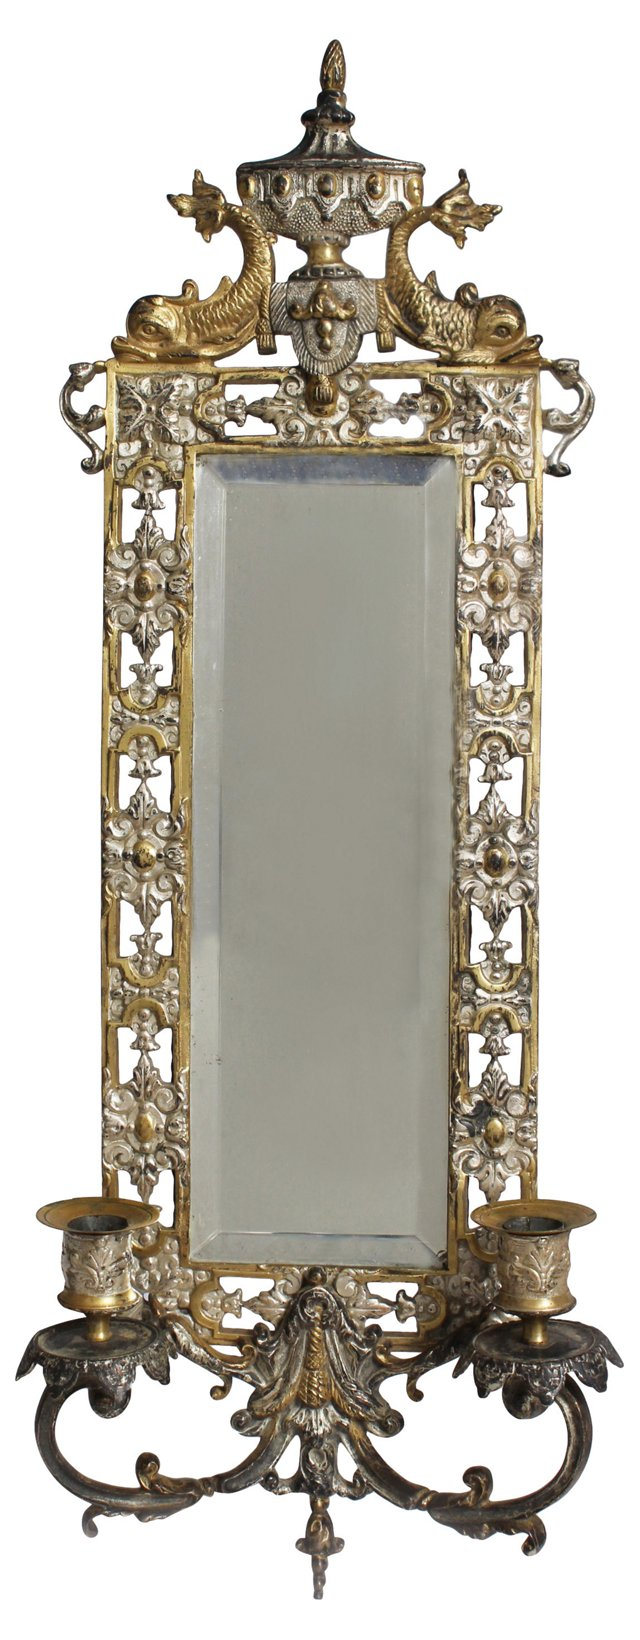 19th-C. Mirror w/ Candleholders